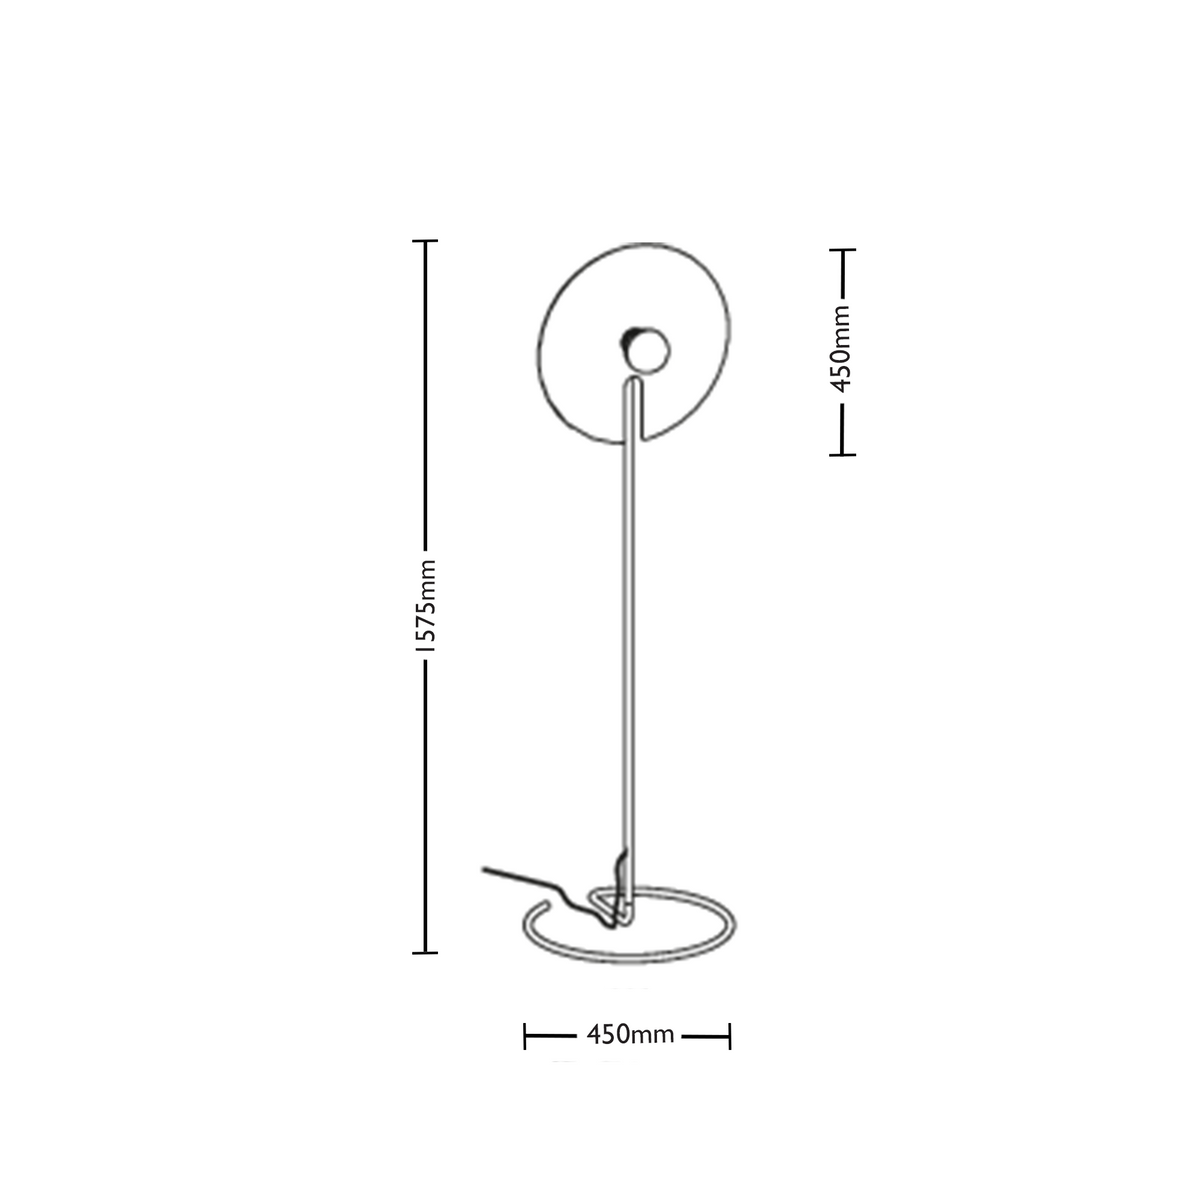 Dimensions for Wever&Ducre Office Mirro Floor Lamp 2.0